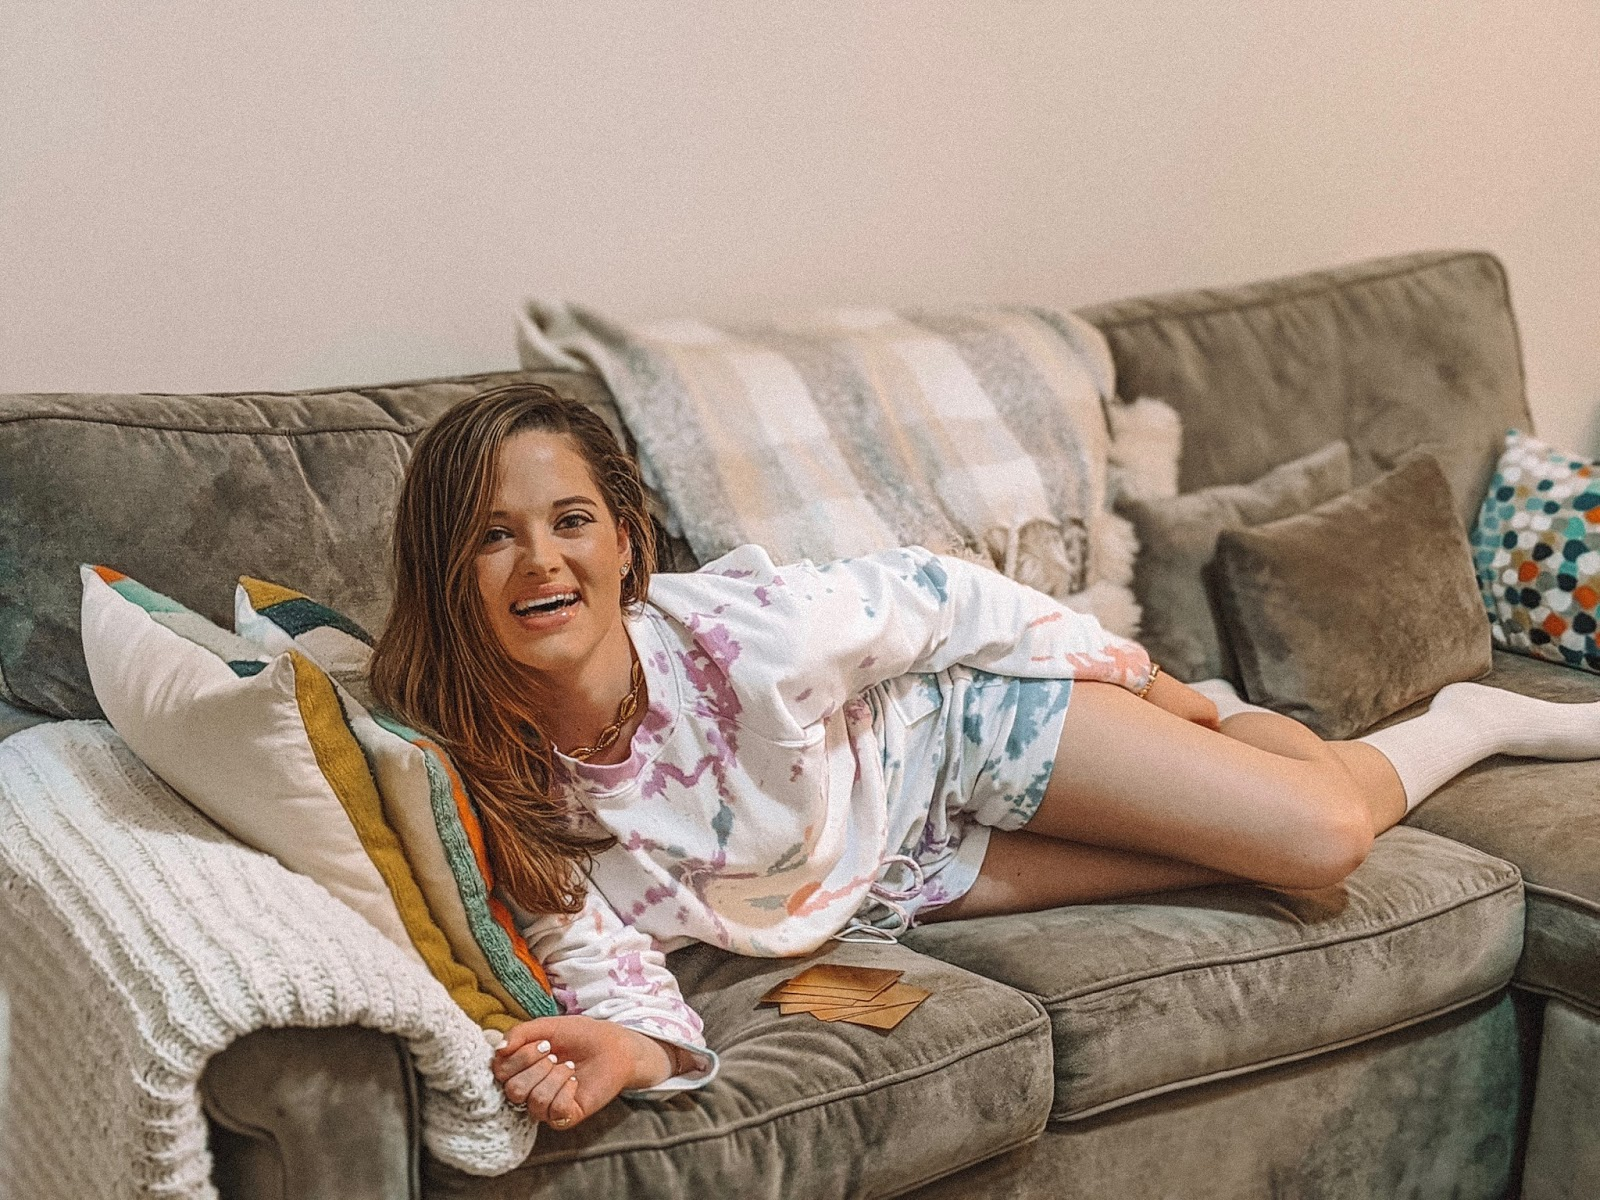 Fashion blogger Kathleen Harper wearing a cute loungewear outfit in her NYC apartment.